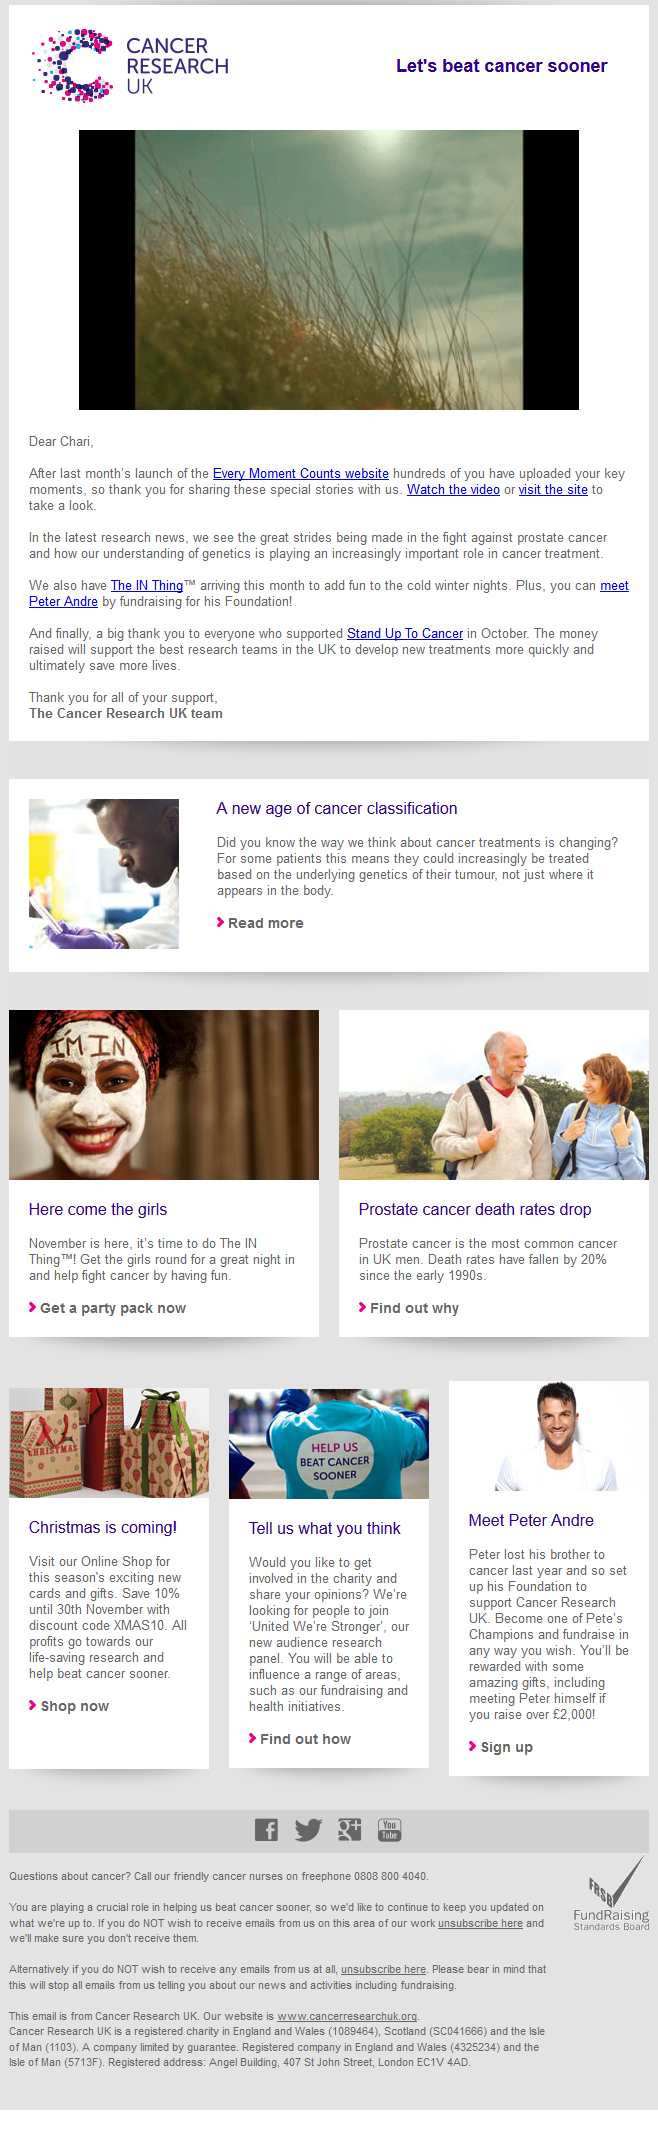 Charity Emails - Cancer Research UK - Every moment counts